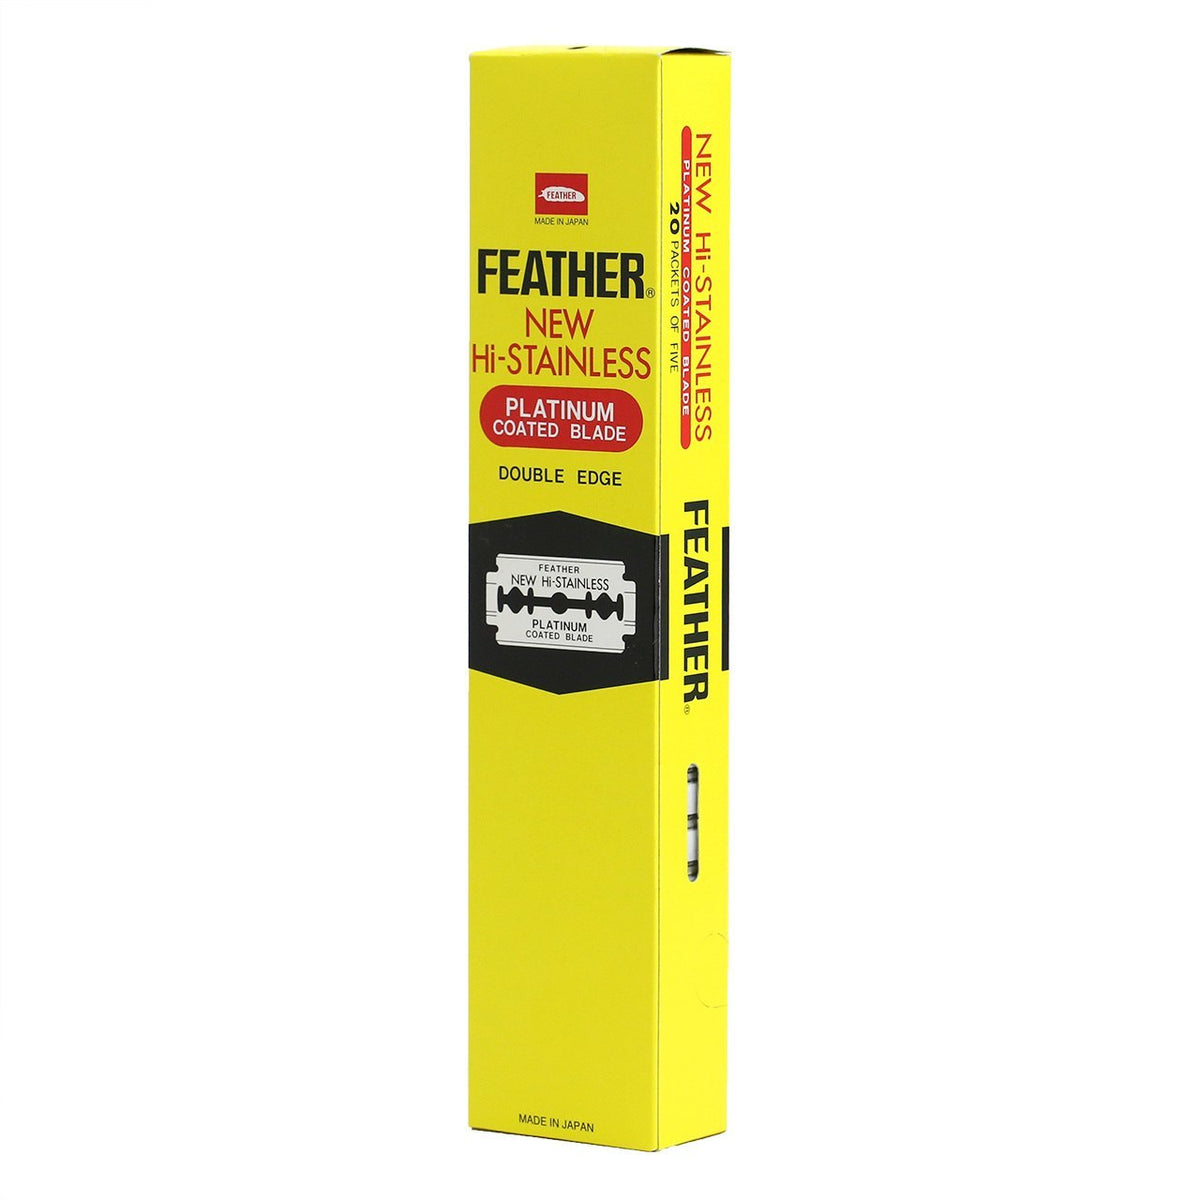 Feather New Hi-Stainless Razor Blades 100 Count